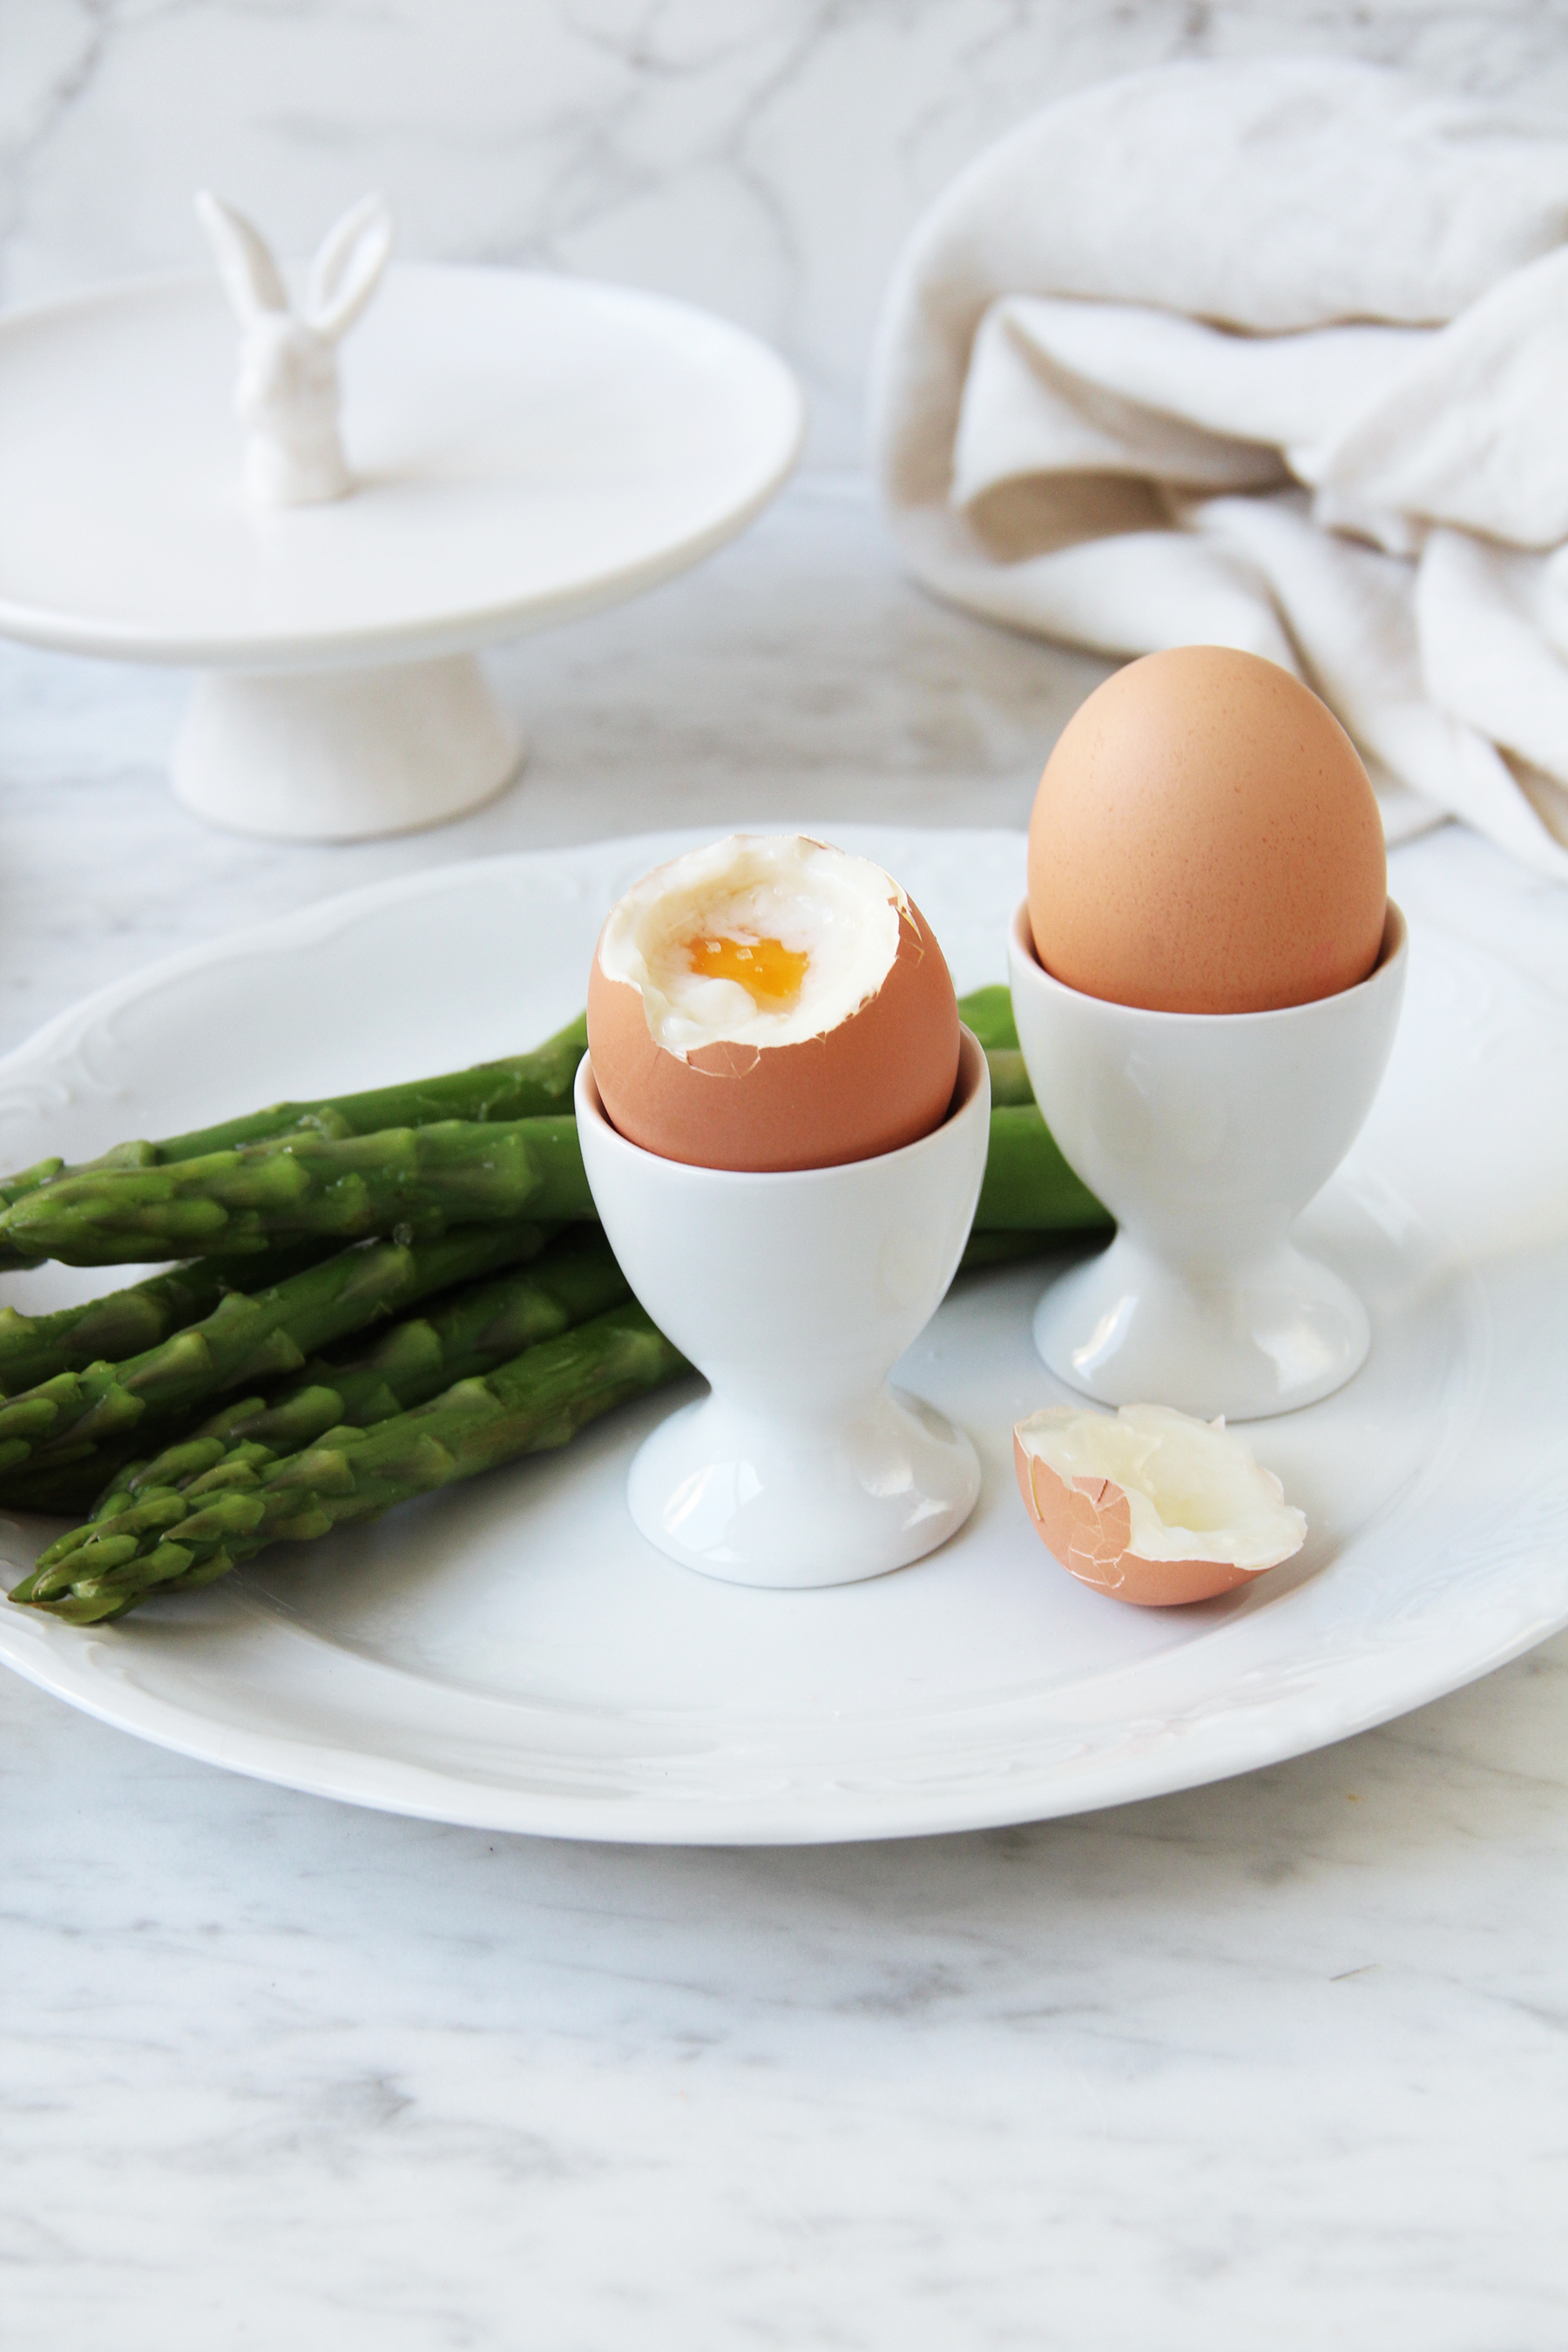 boiled eggs and asparagus